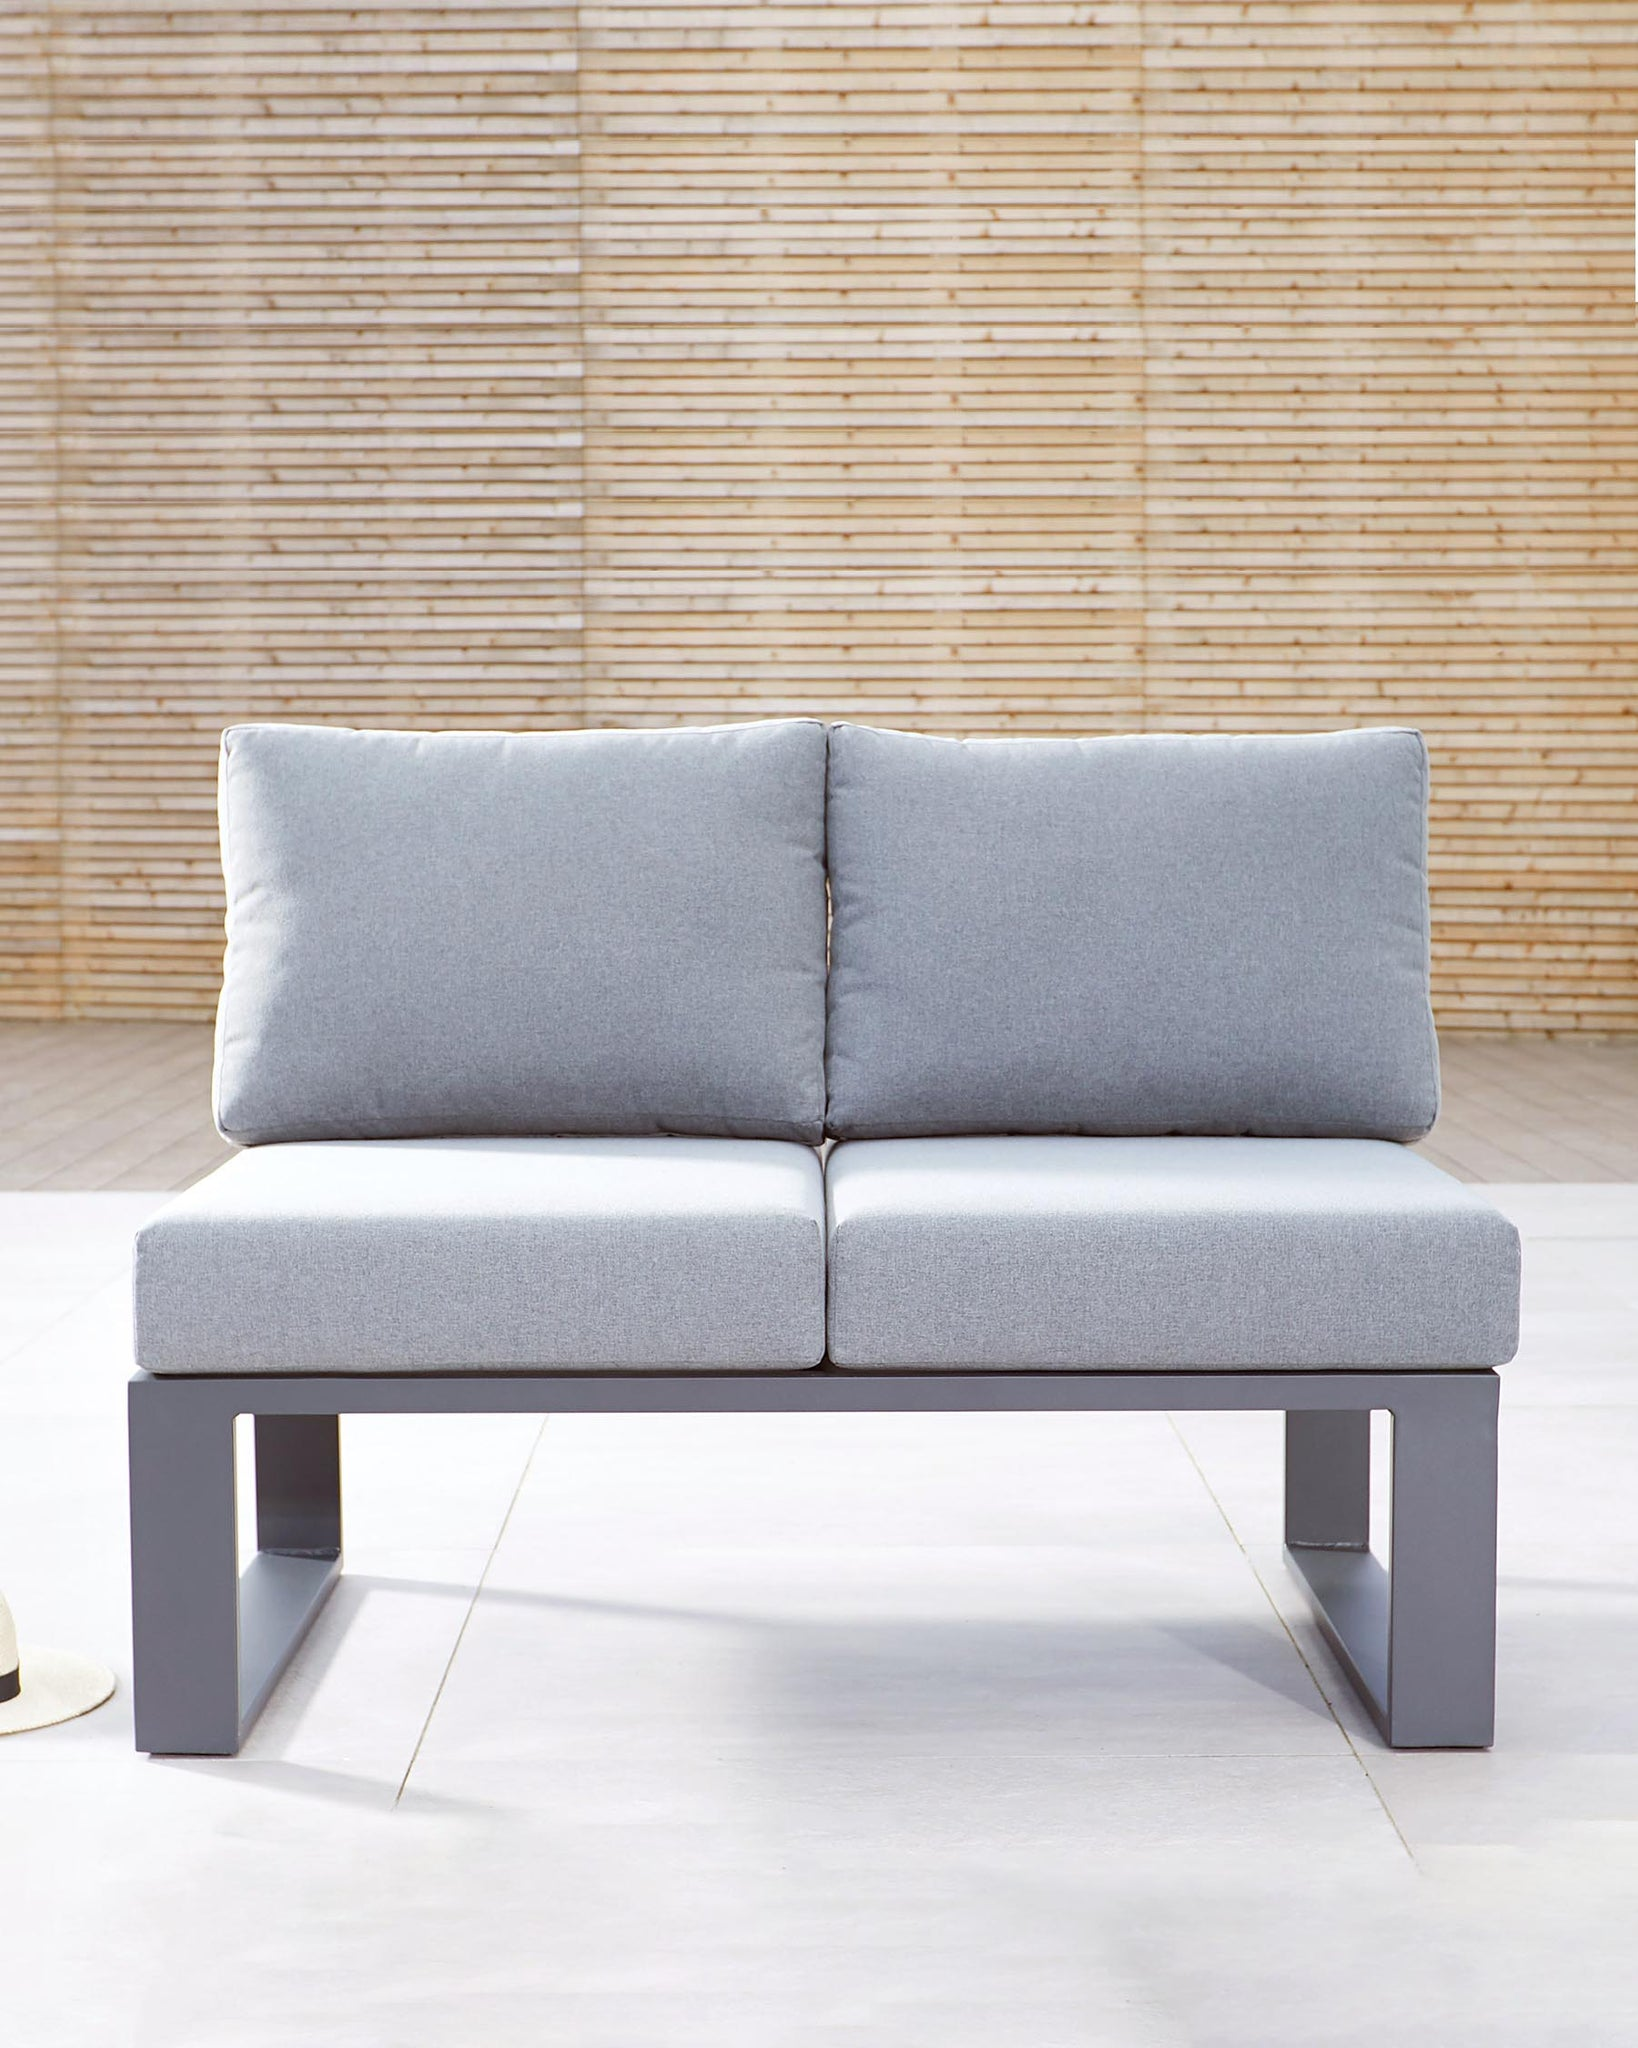 Savannah Grey Garden 2 Seater Modular Sofa